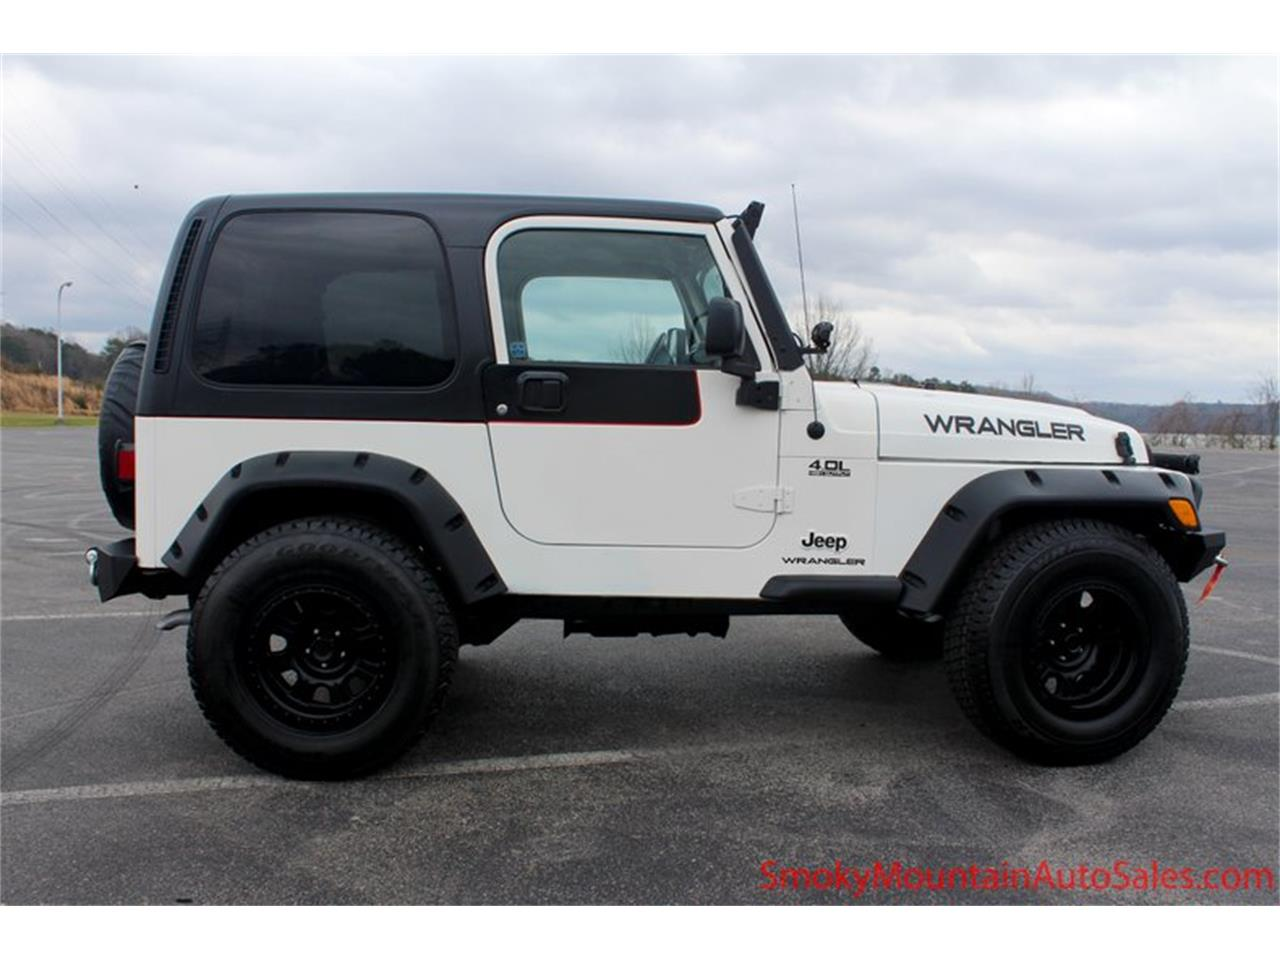 Large Picture of '03 Wrangler located in Tennessee - $12,995.00 Offered by Smoky Mountain Traders - P95Y